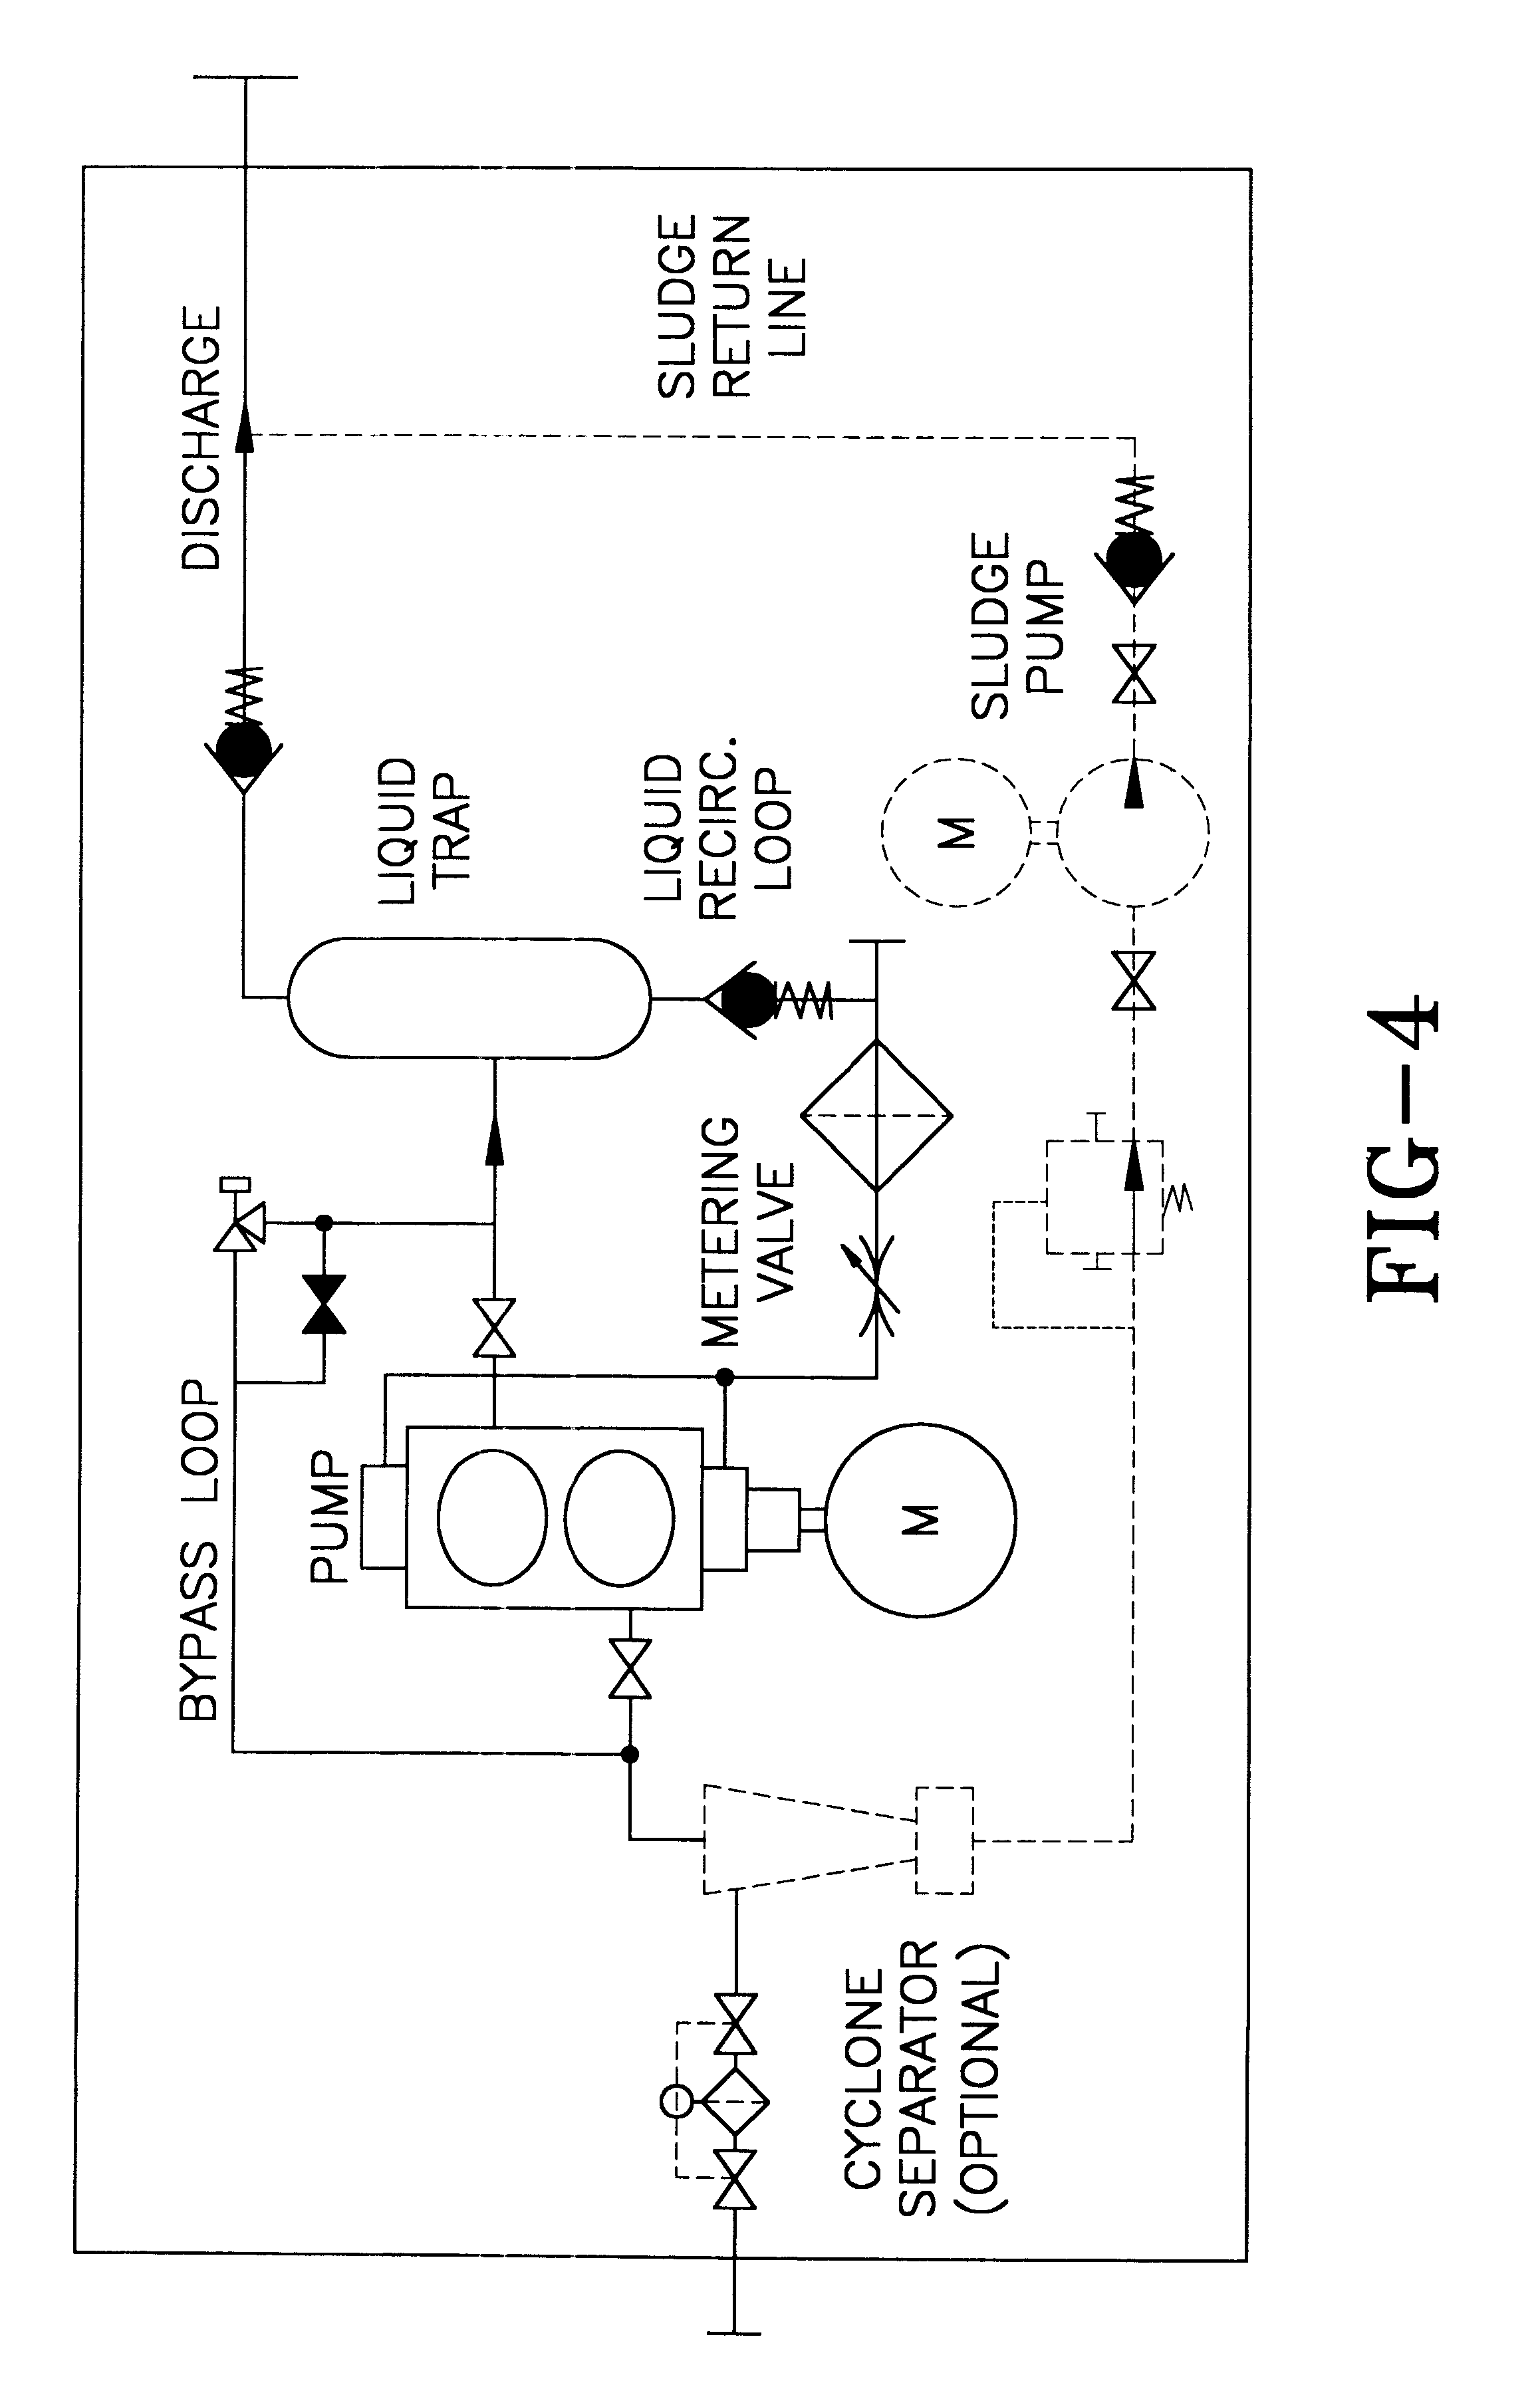 I02049962 furthermore Pid Presentation Copy as well Index in addition Pressure Regulators In Upstream Oil And Gas Processing Applications additionally Thermal Power Plant 9404812. on oil pressure schematic